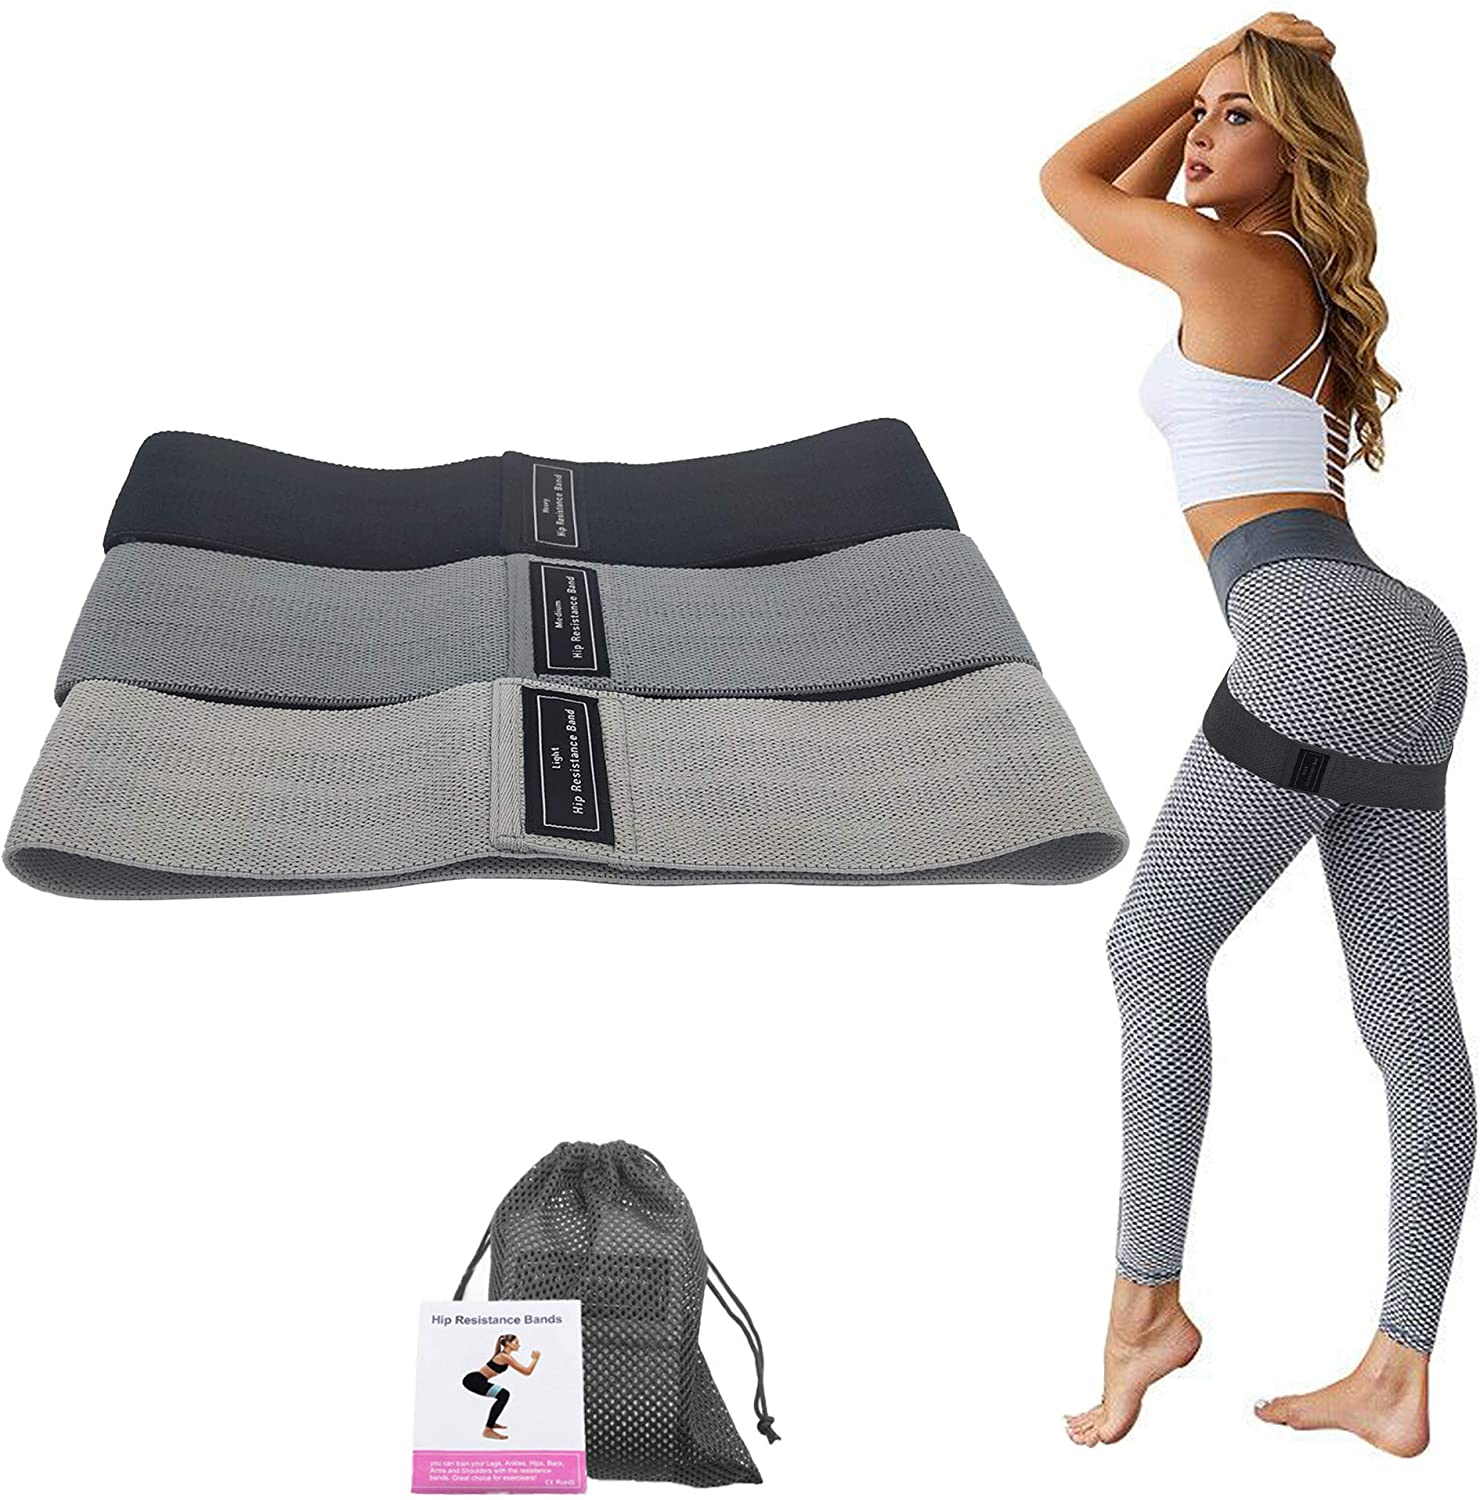 Fitaway Resistance Bands, Exercise Bands for Women/Men Legs and Butt, Non-Slip Booty Bands Exercise Bands for Working Out